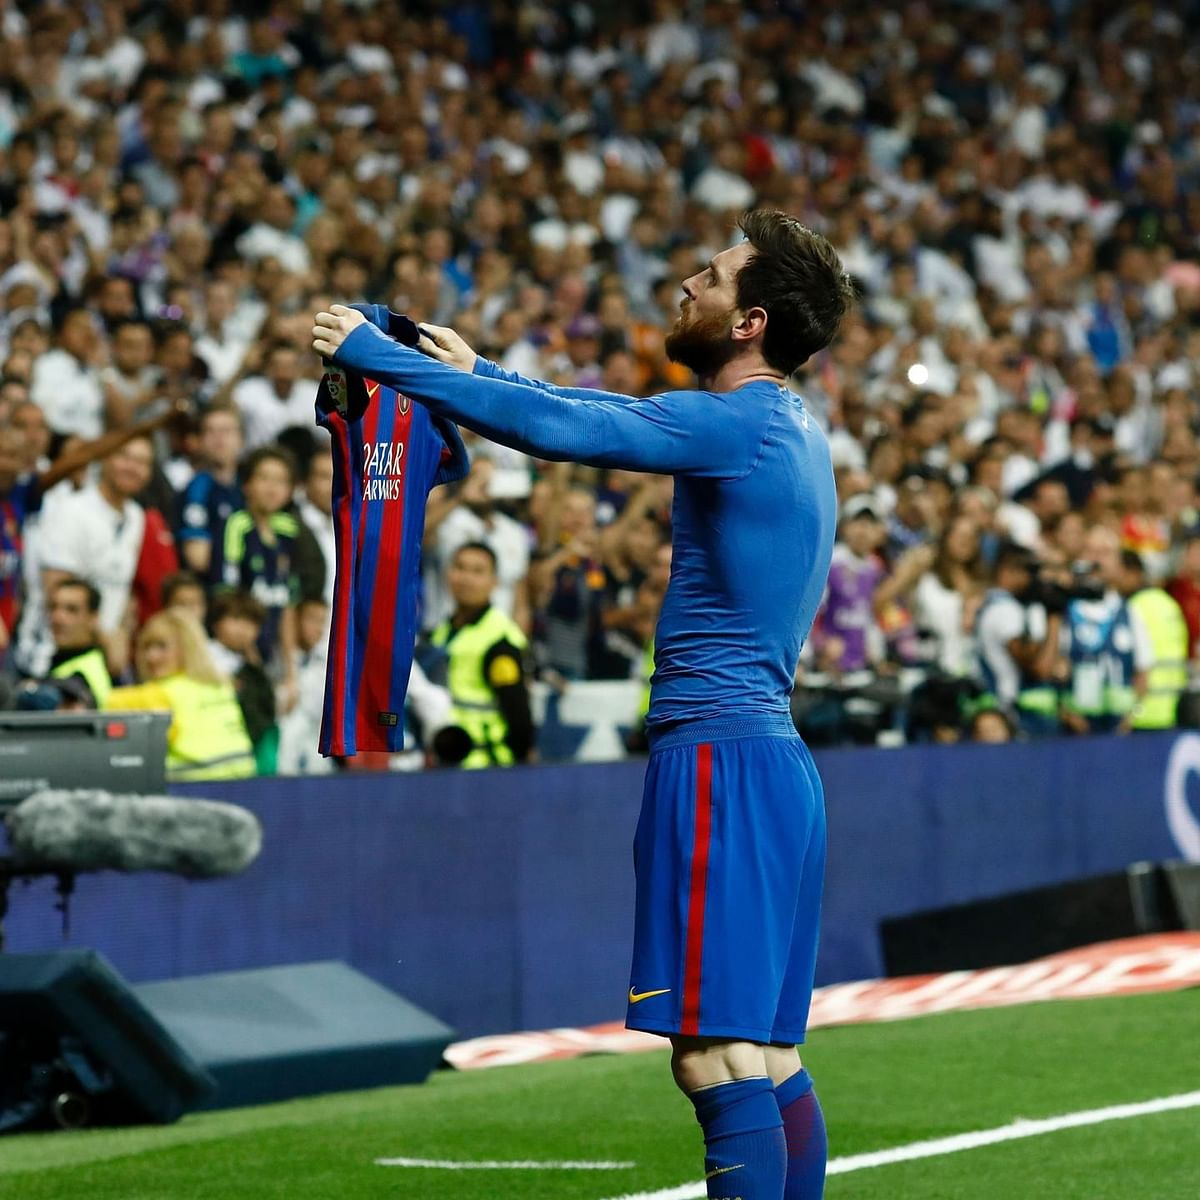 Messi or Barcelona? A bittersweet conundrum for fans